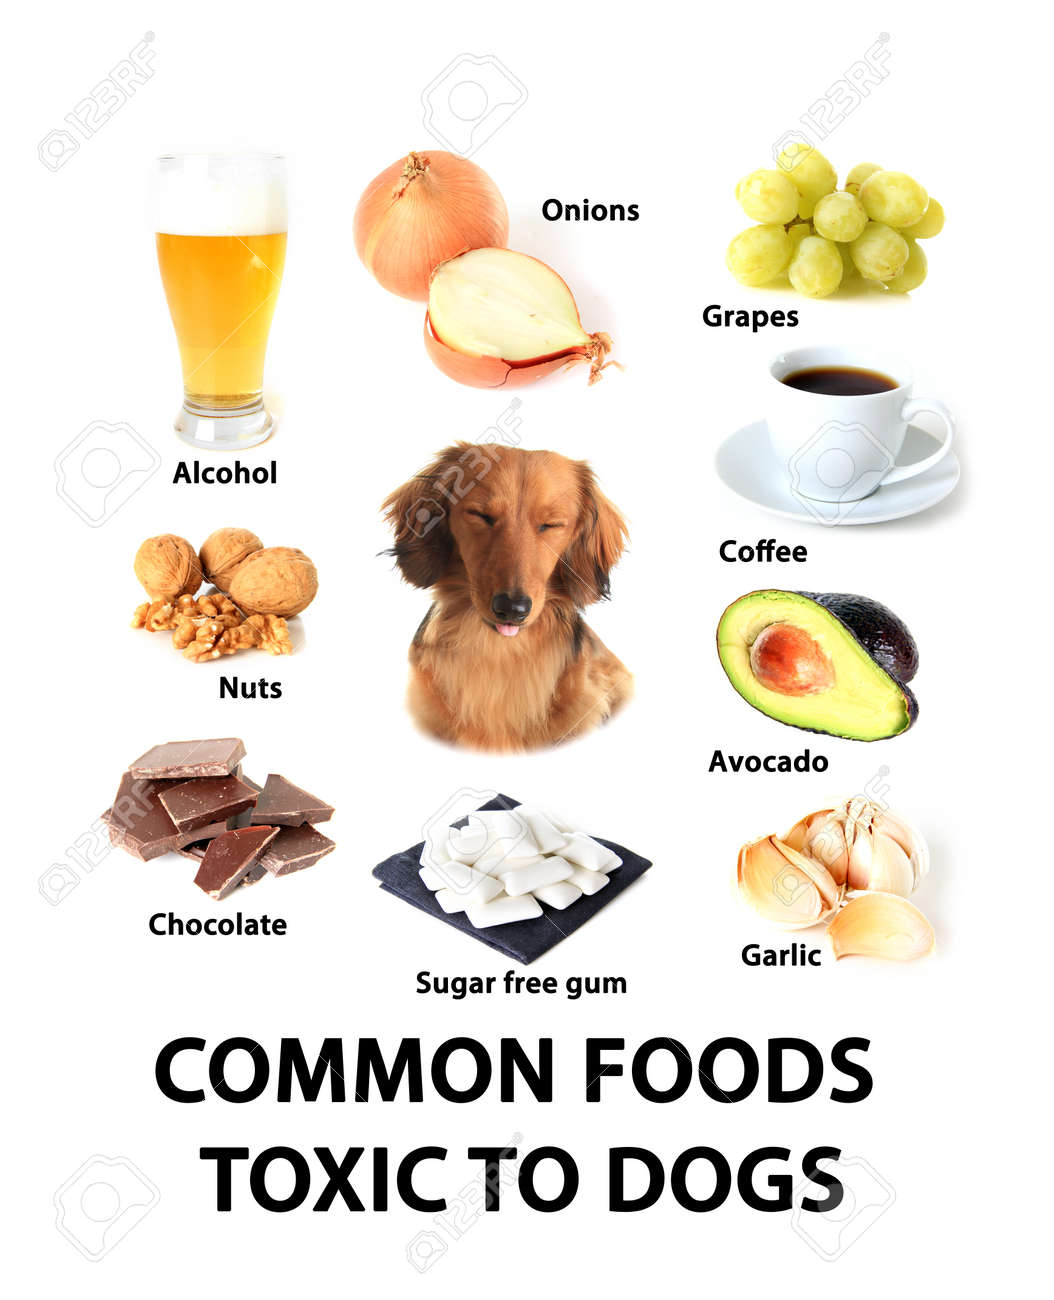 Cosmopolitan Toxic Foods Cats Are Avocados Toxic Dogs Dogs Stock Royalty Free Is Avocado Safe Chart Toxic Foods Stock Photo Chart bark post Are Avocados Bad For Dogs